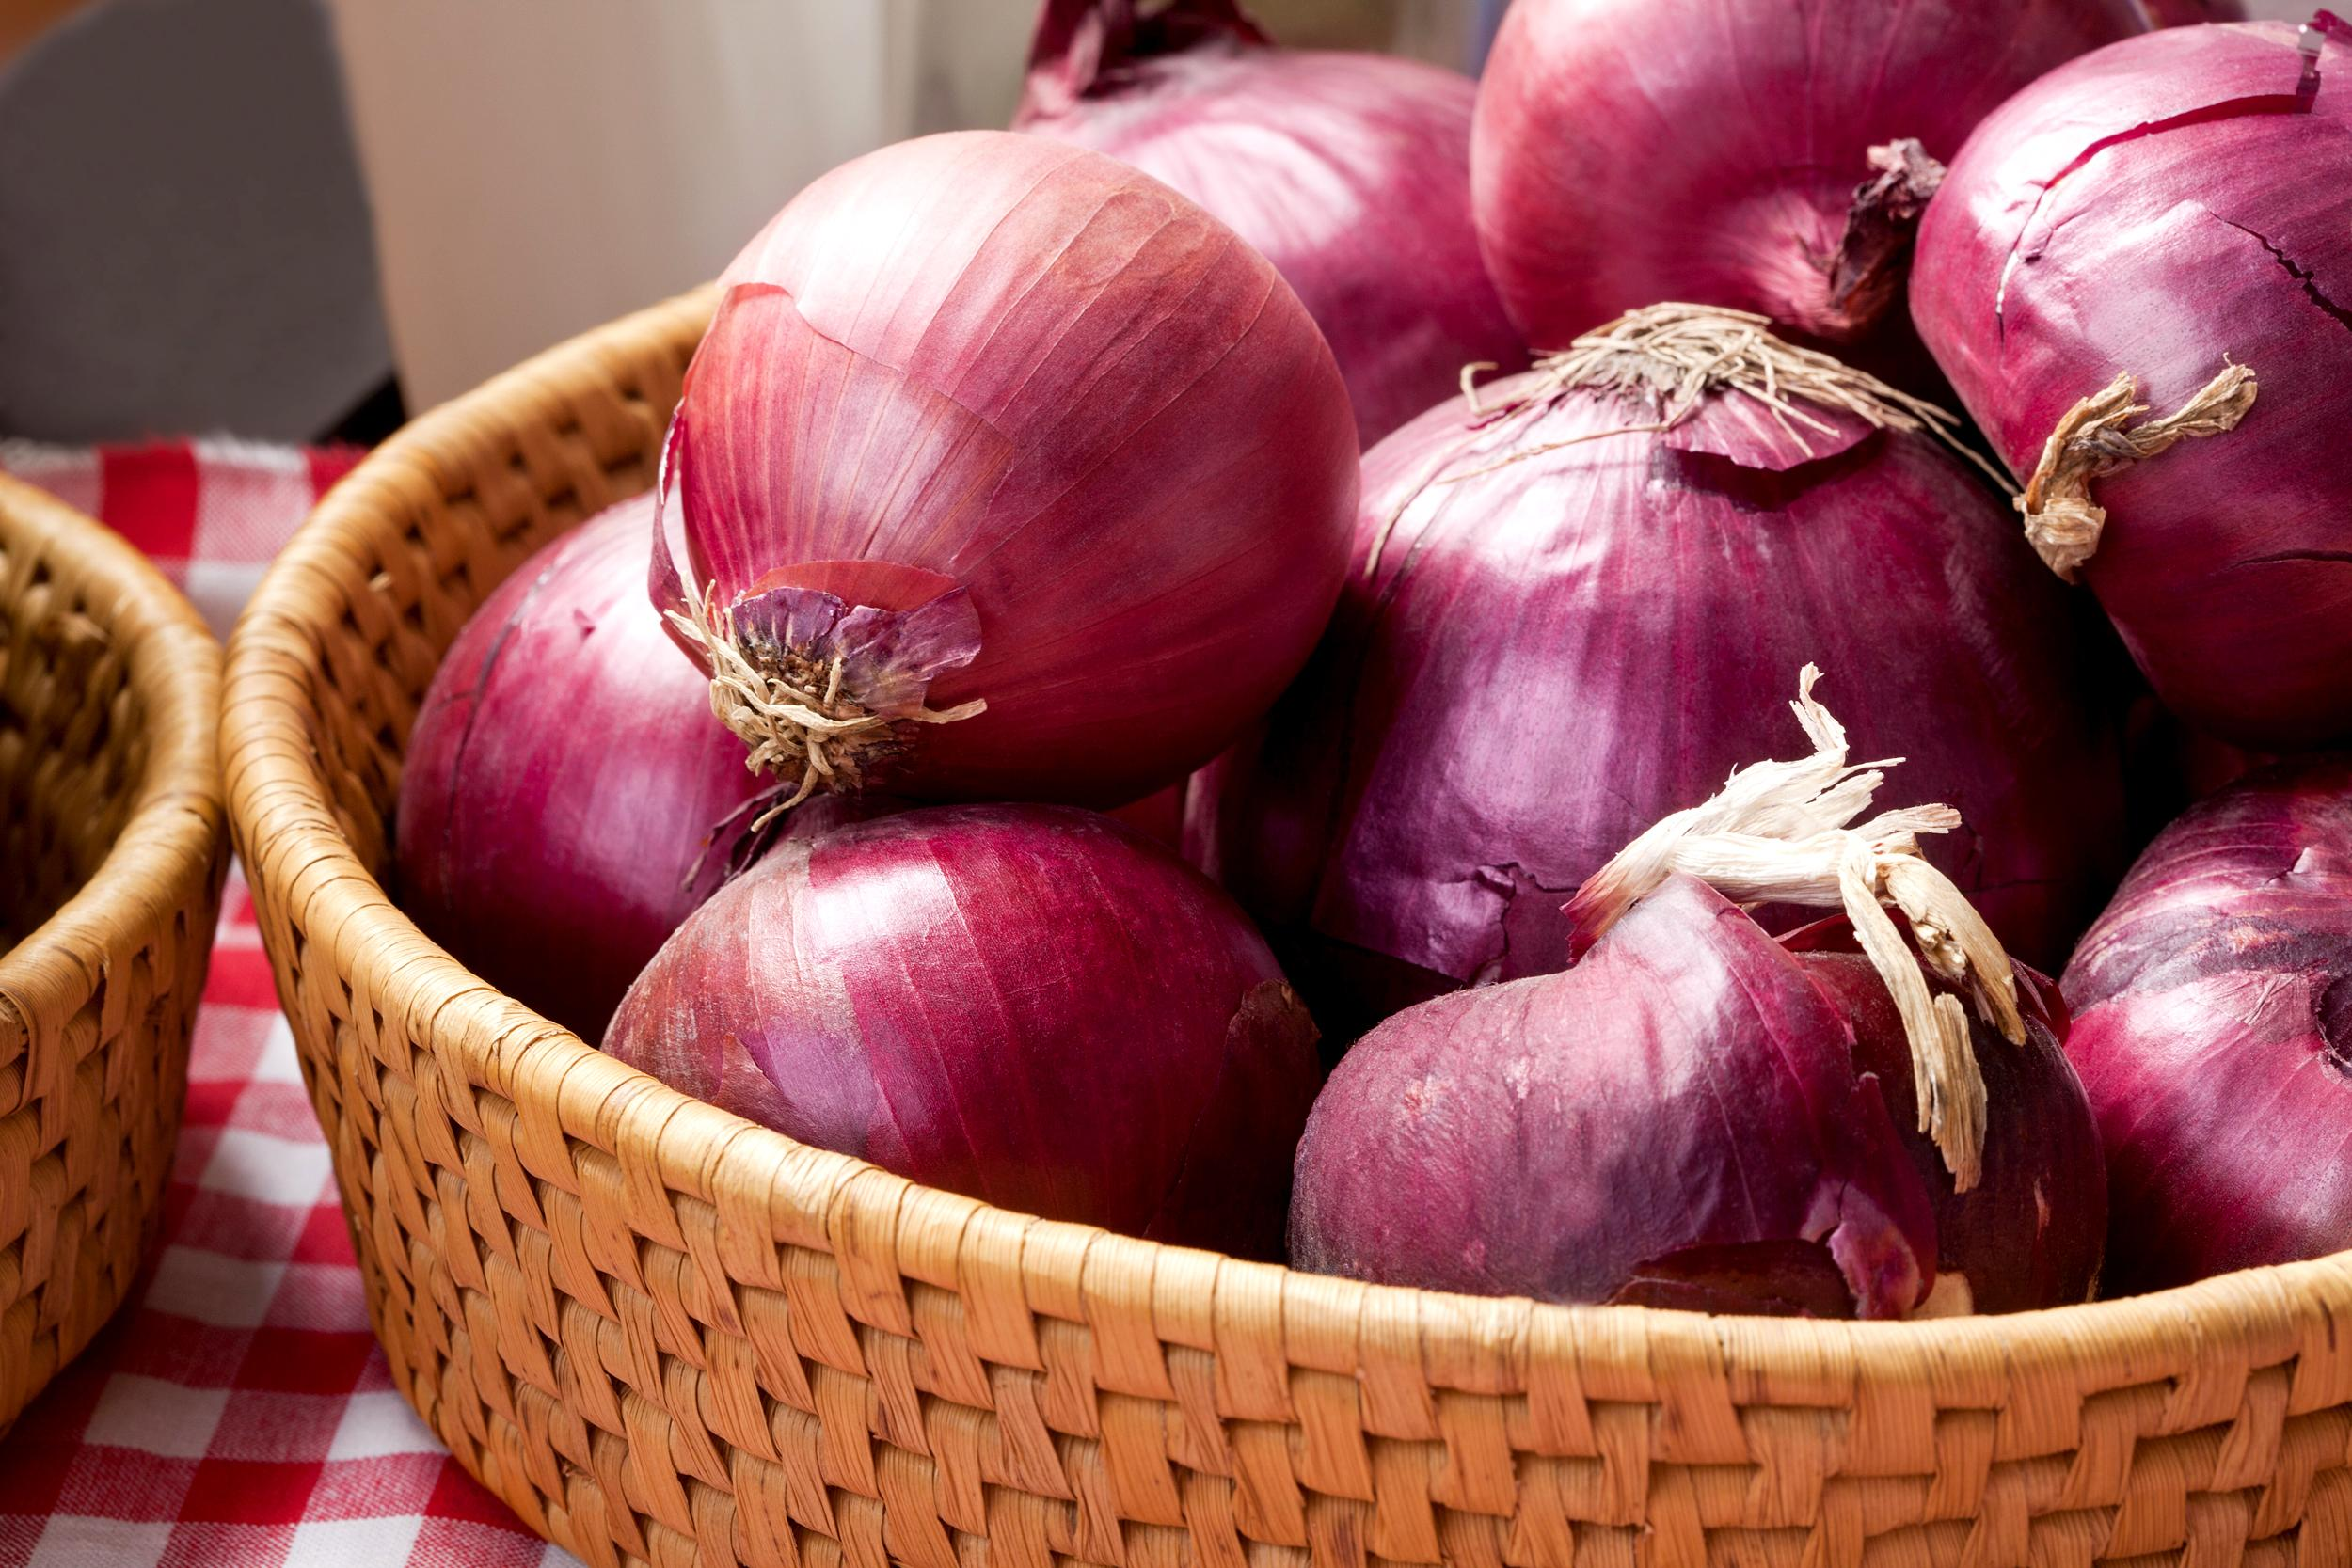 Onions in meal delivery service recalled for salmonella